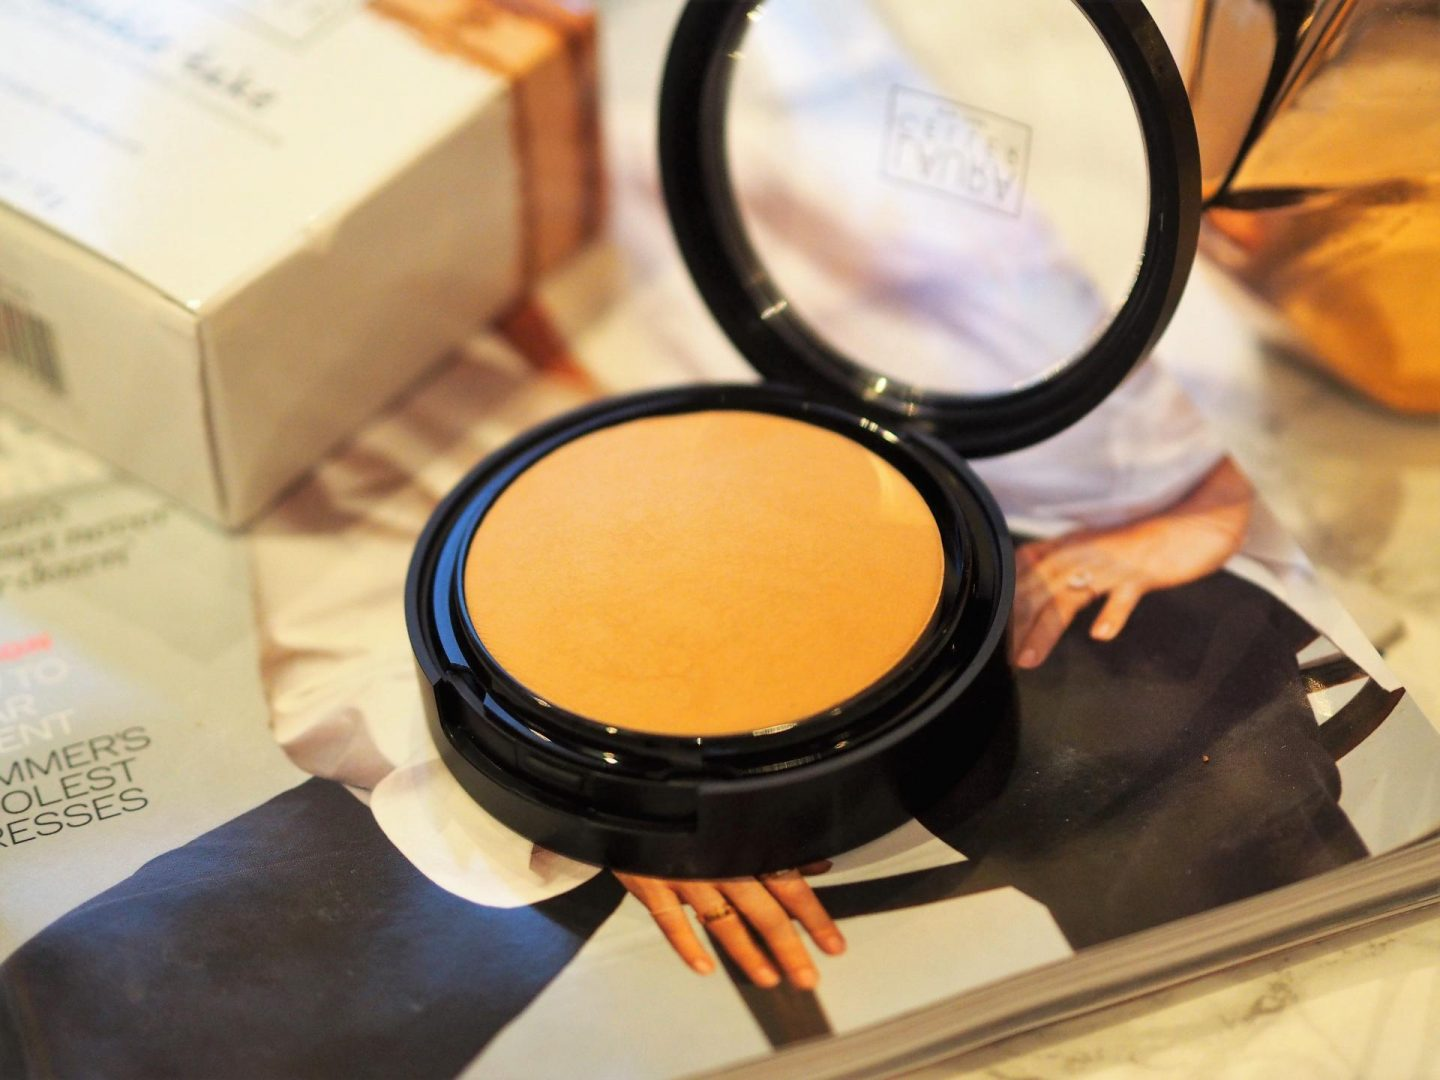 Laura Gellar Double Take Baked Versatile Powder Foundation